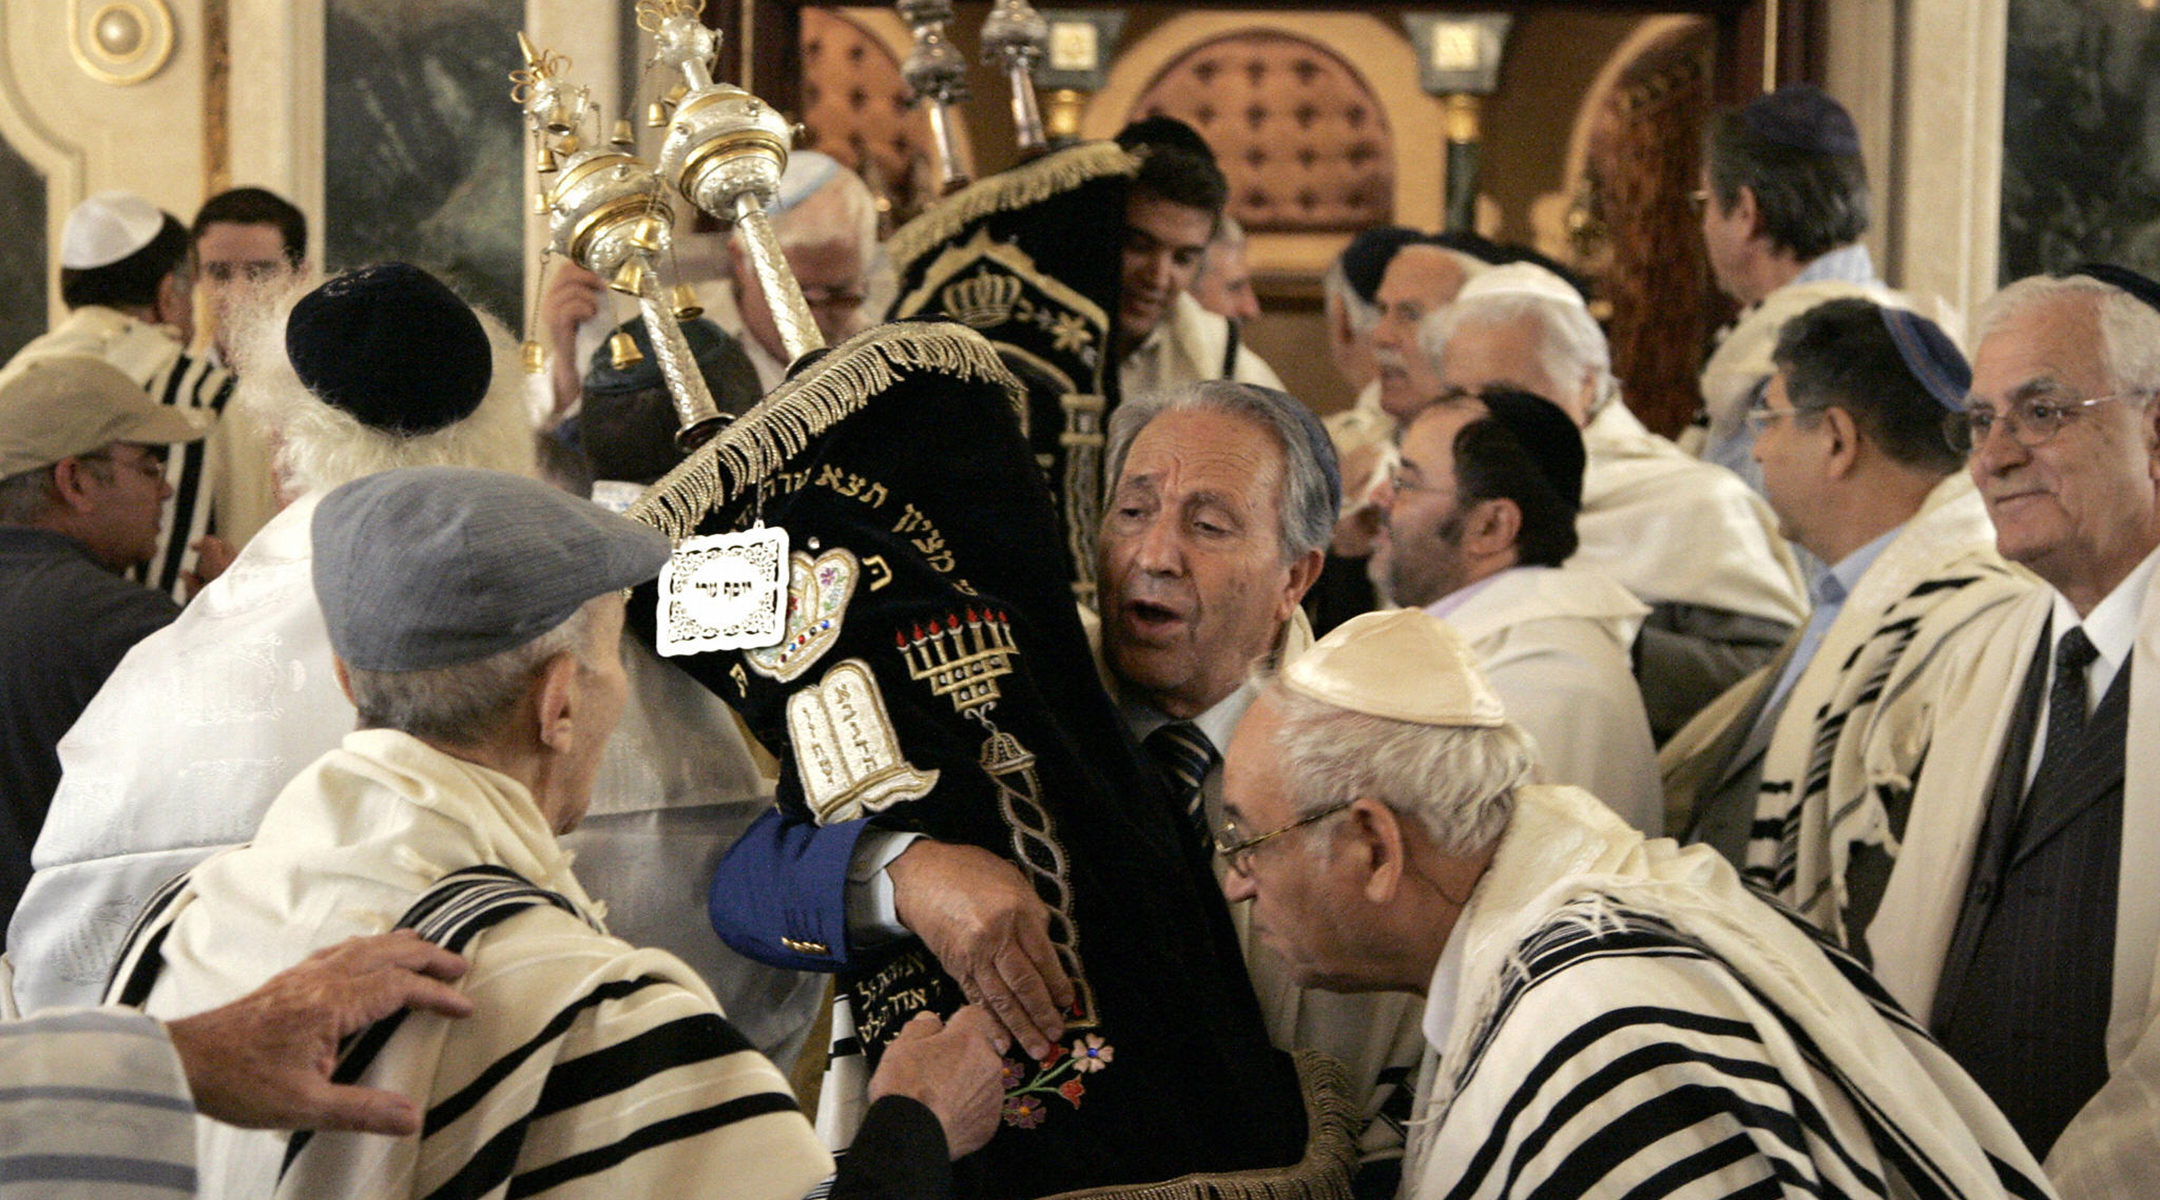 Members of Morocco's Jewish community kiss Torah scrolls at Simchat Torah at the Great Synagogue of Casablanca, Morocco on Oct. 5, 2007. (Abdelhak Senna/AFP via Getty Images)